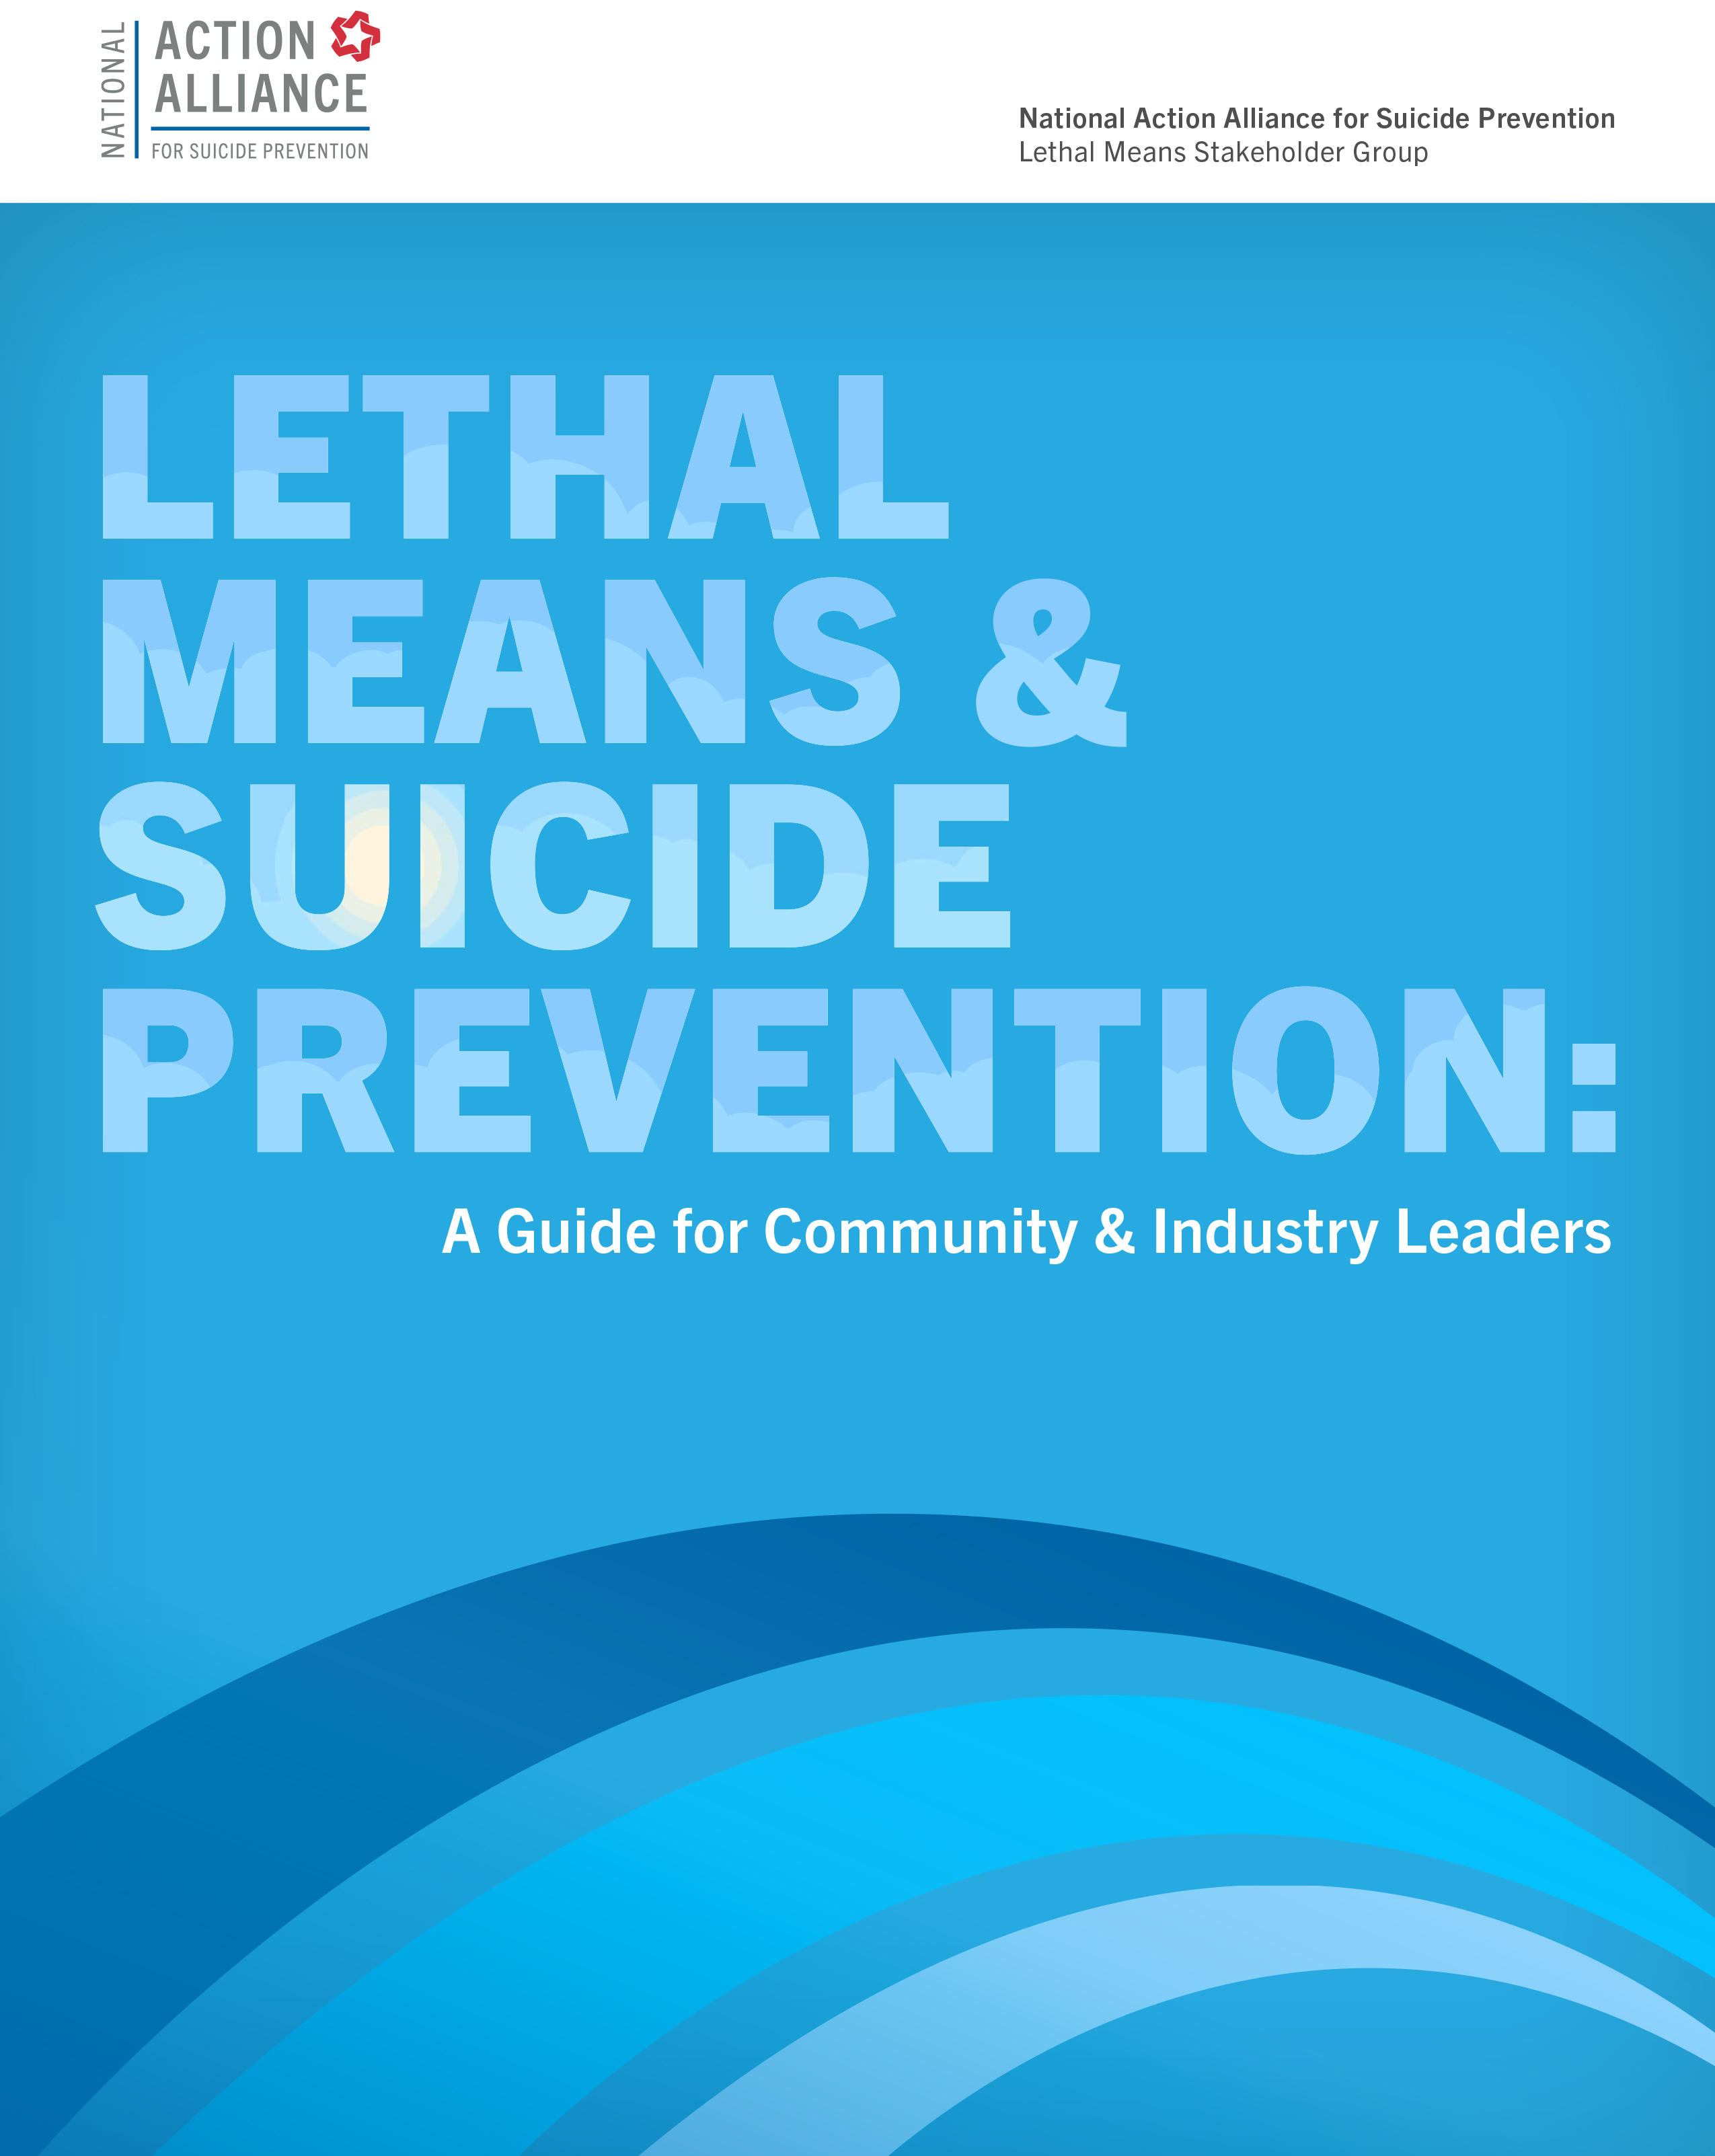 Lethal Means & Suicide Prevention: A Guide for Community & Industry Leaders